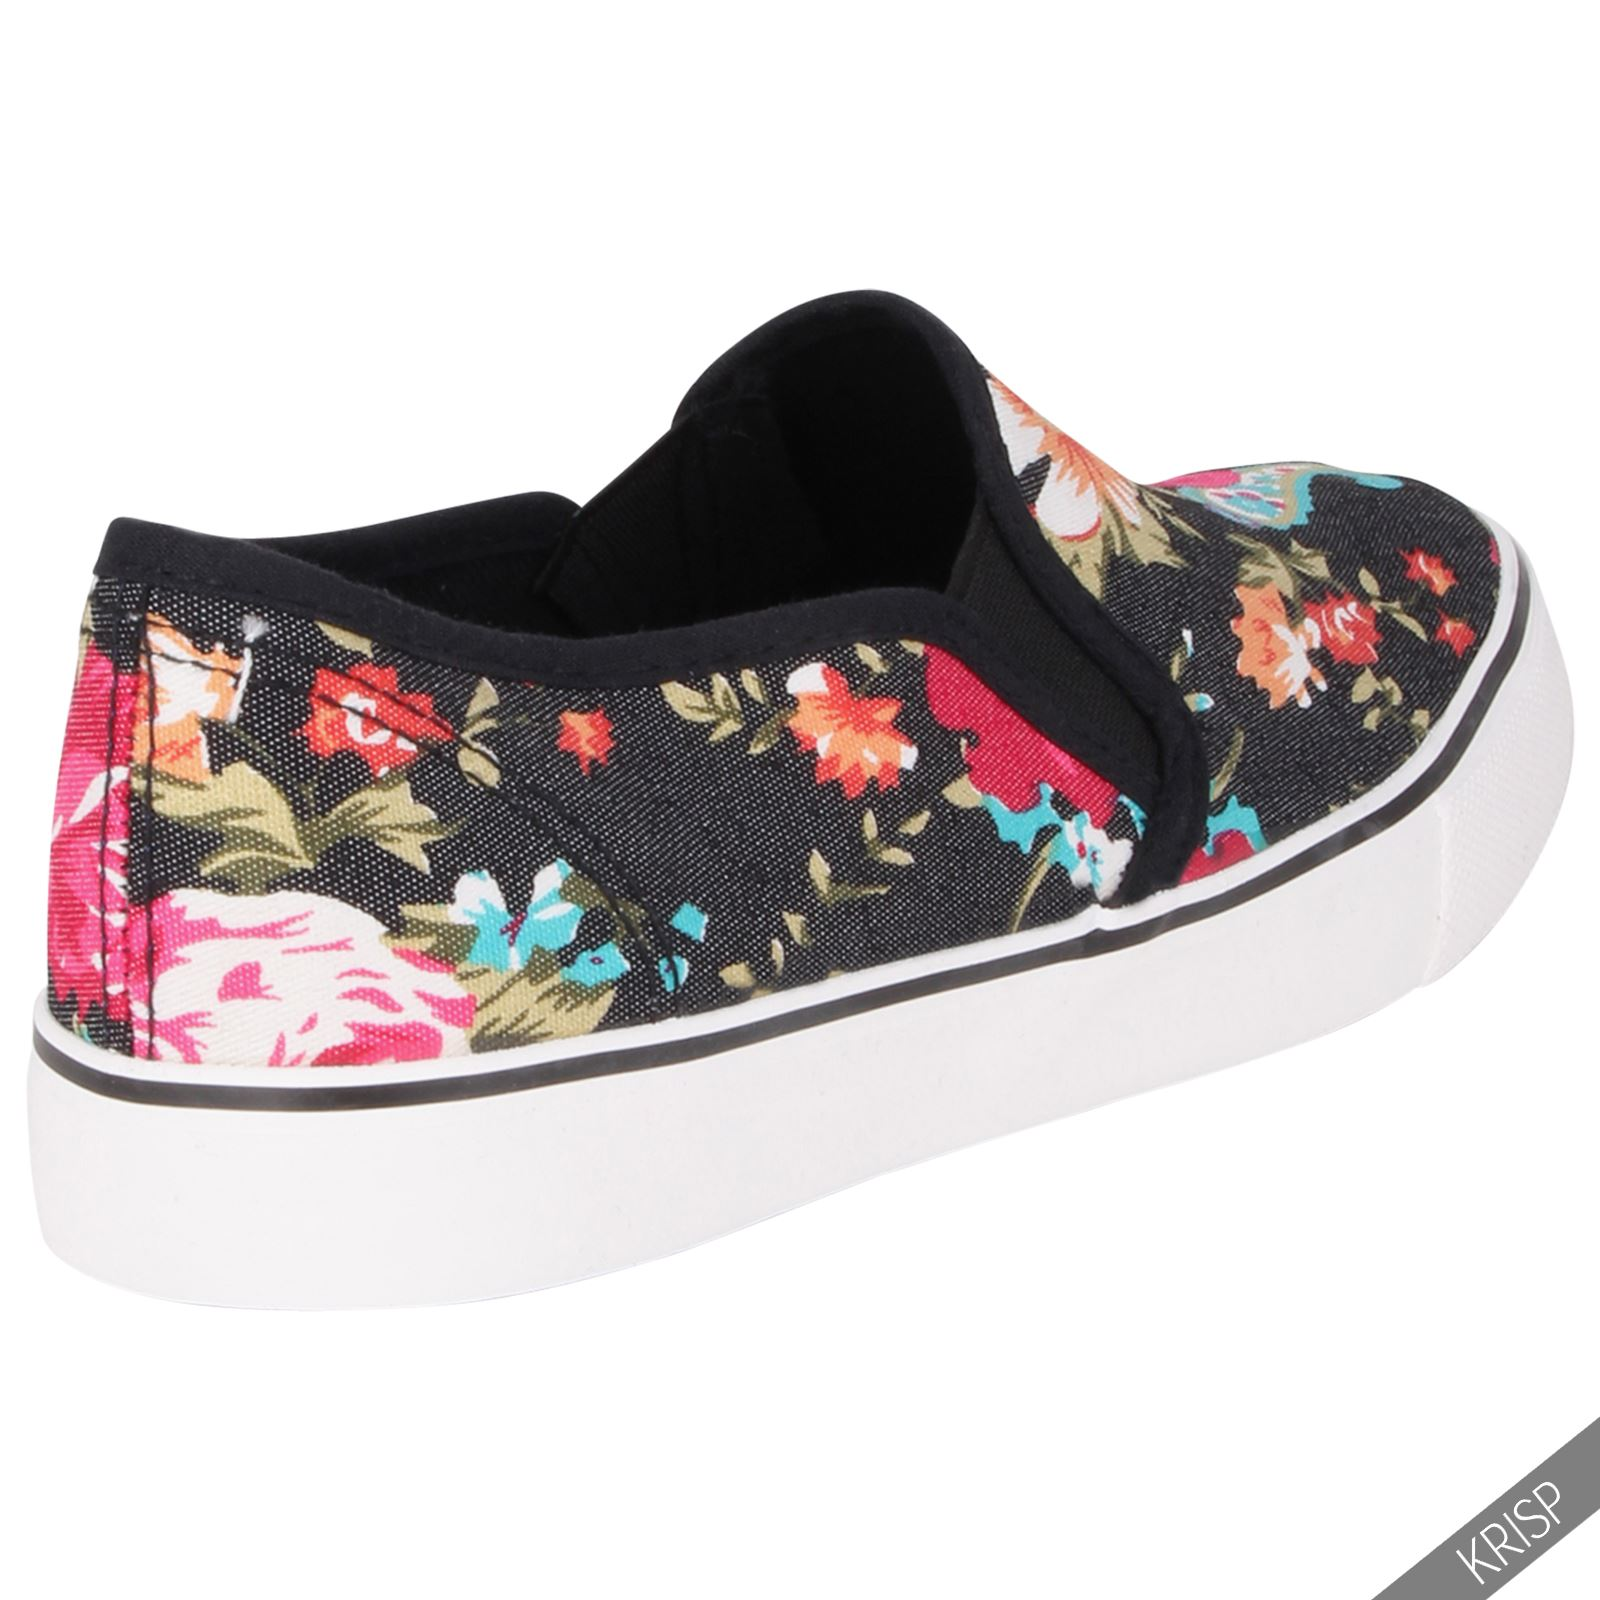 Women's Trainers Trainers, Sneakers 92